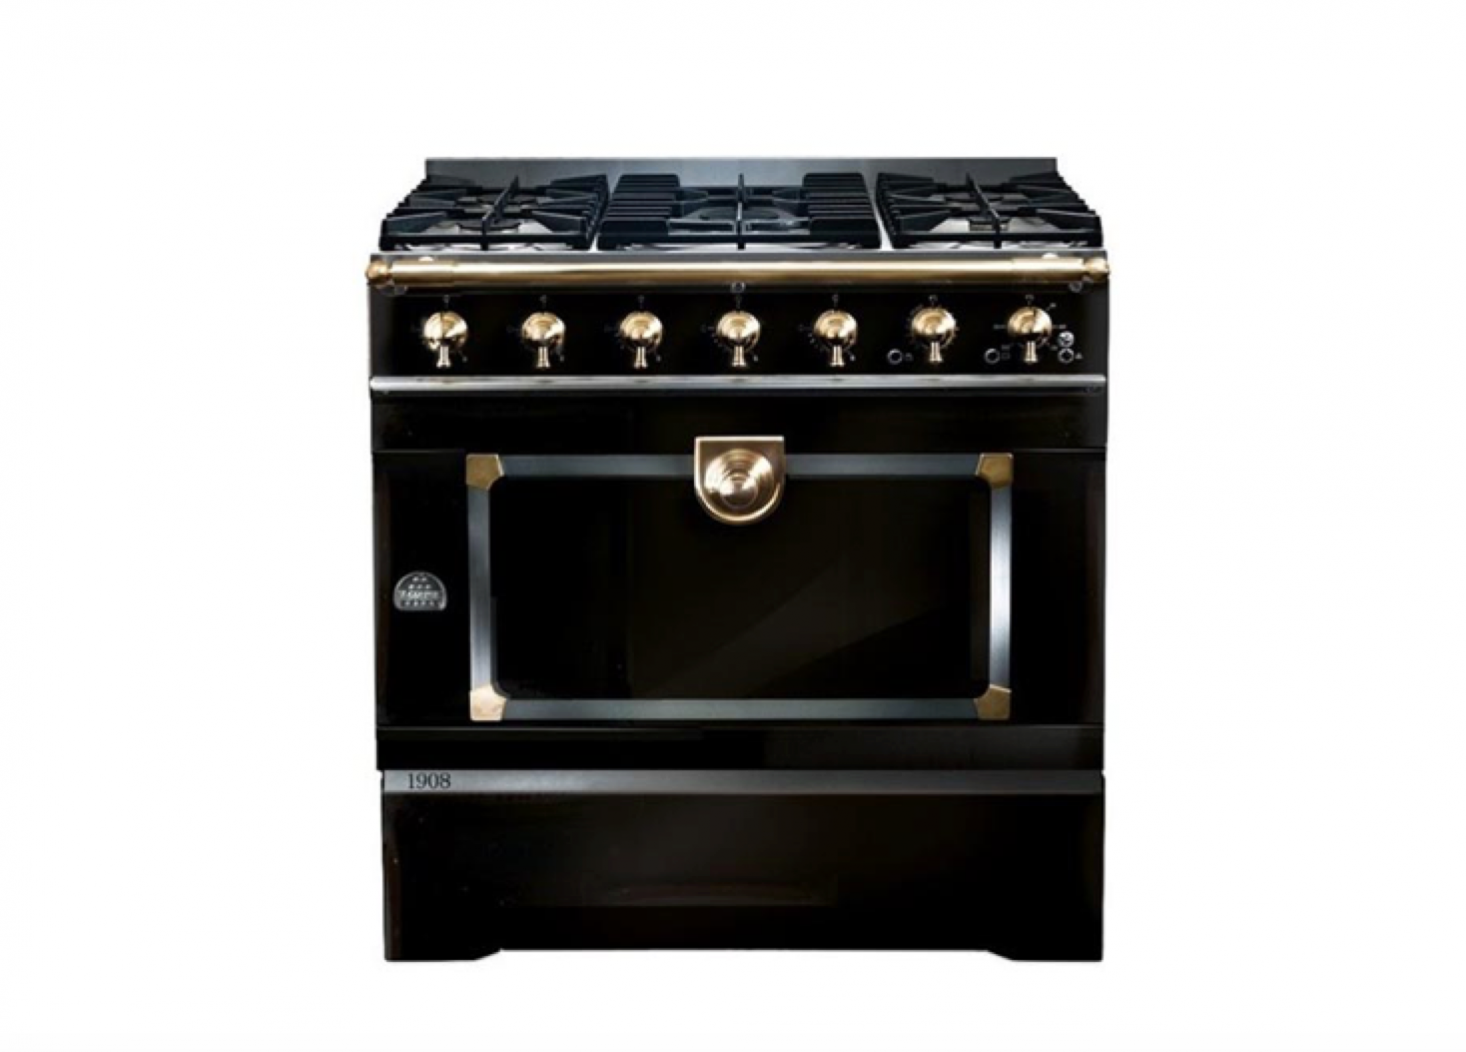 Remodeling 101 8 Sources For High End Used Appliances